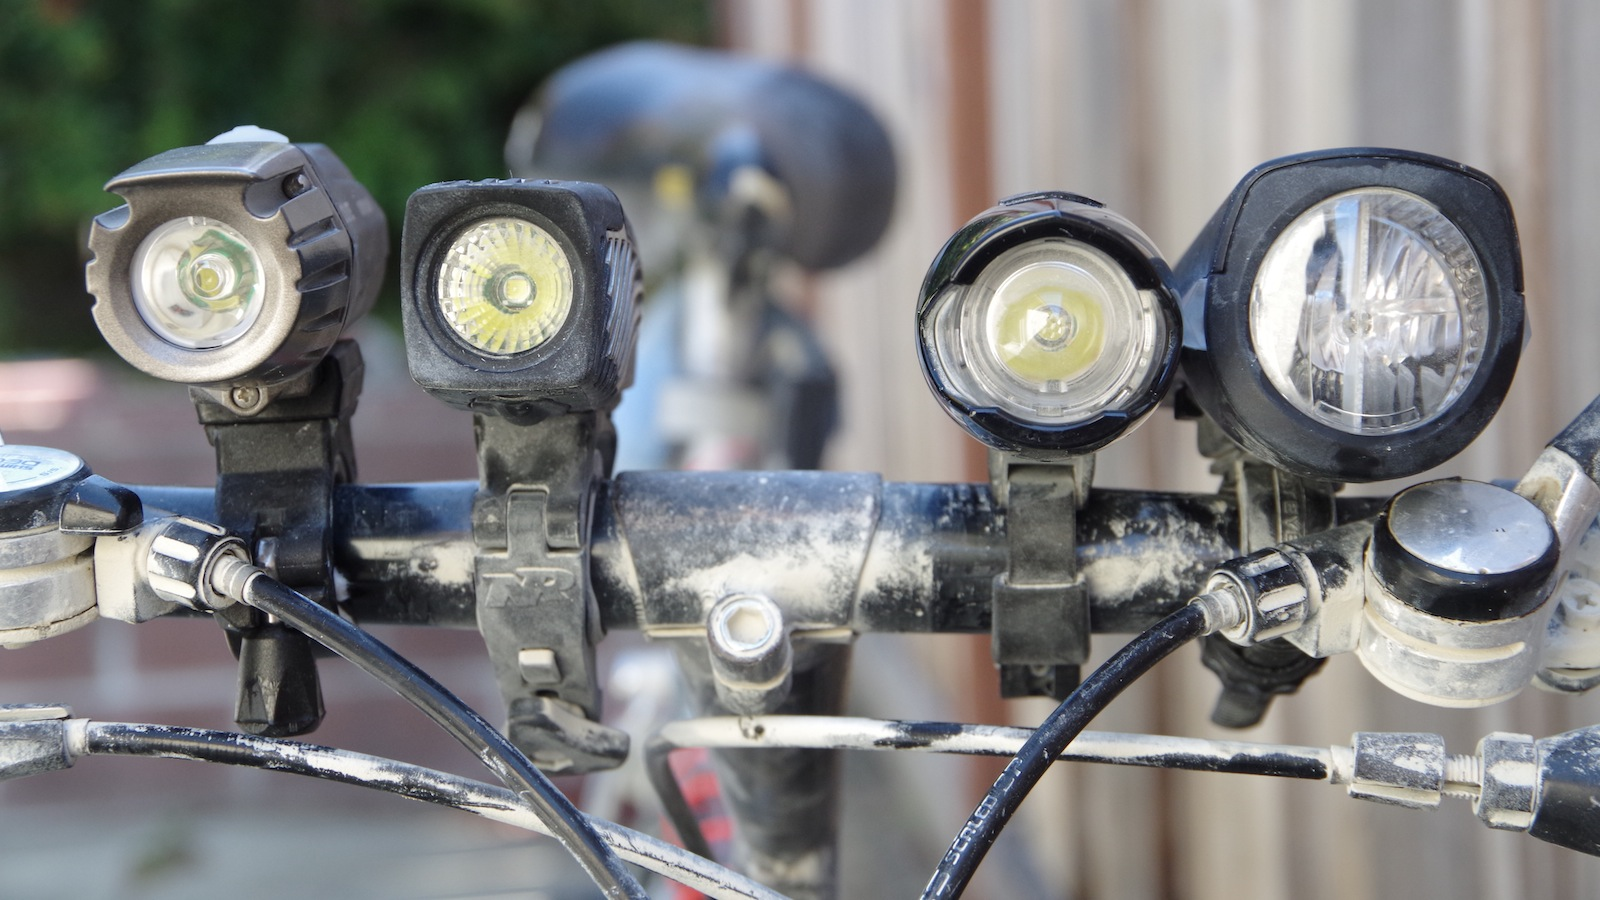 Fitmodo: The Best Bike Light For Under $120